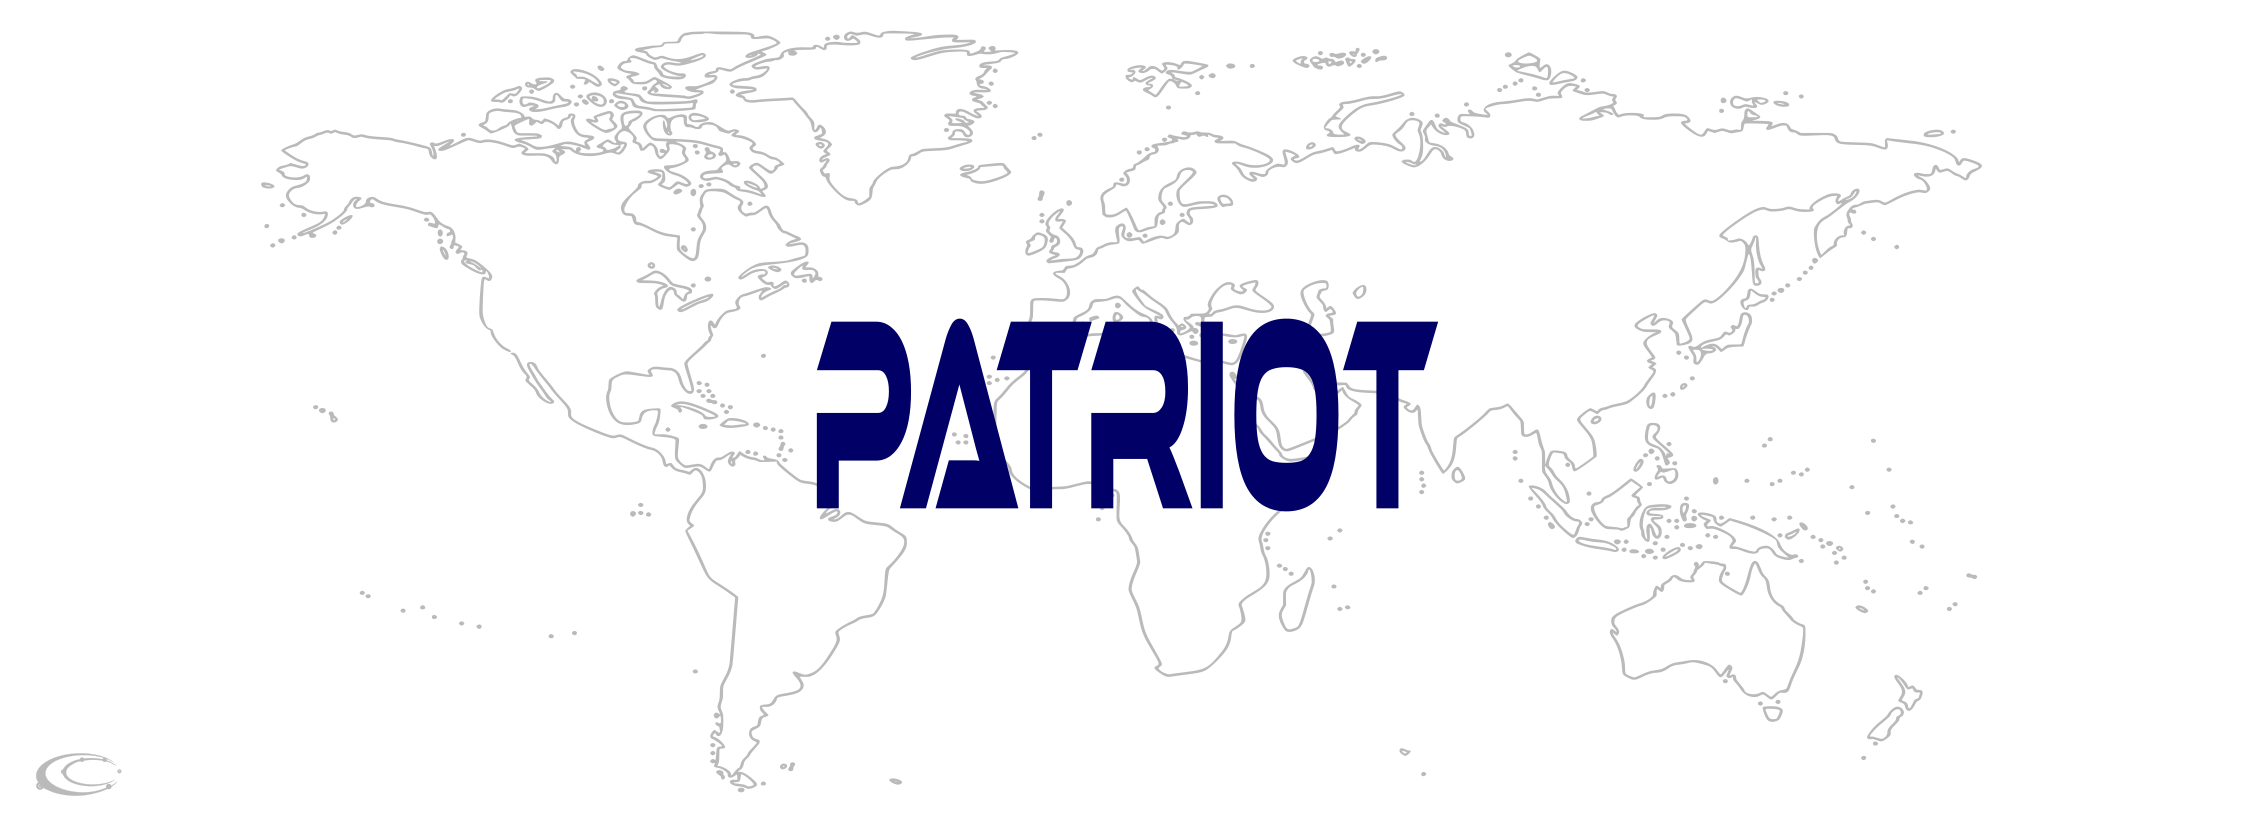 carbonfibremedia_multinational_patriot_thoughs_on_patriotism_patriot.png